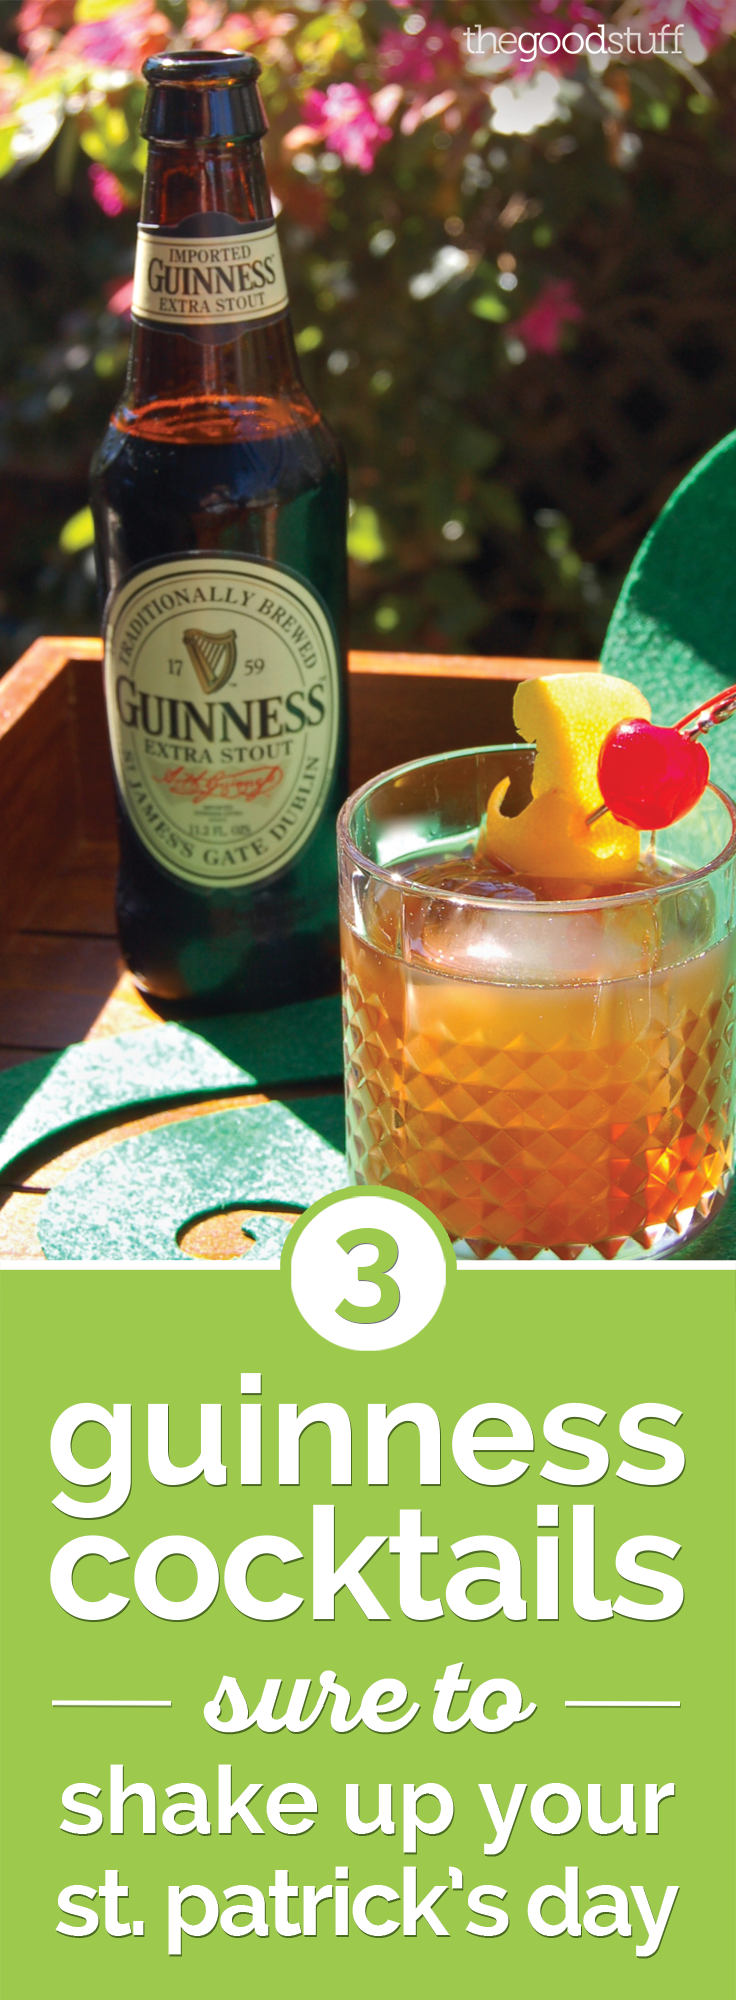 Guinness Cocktails | thegoodstuff